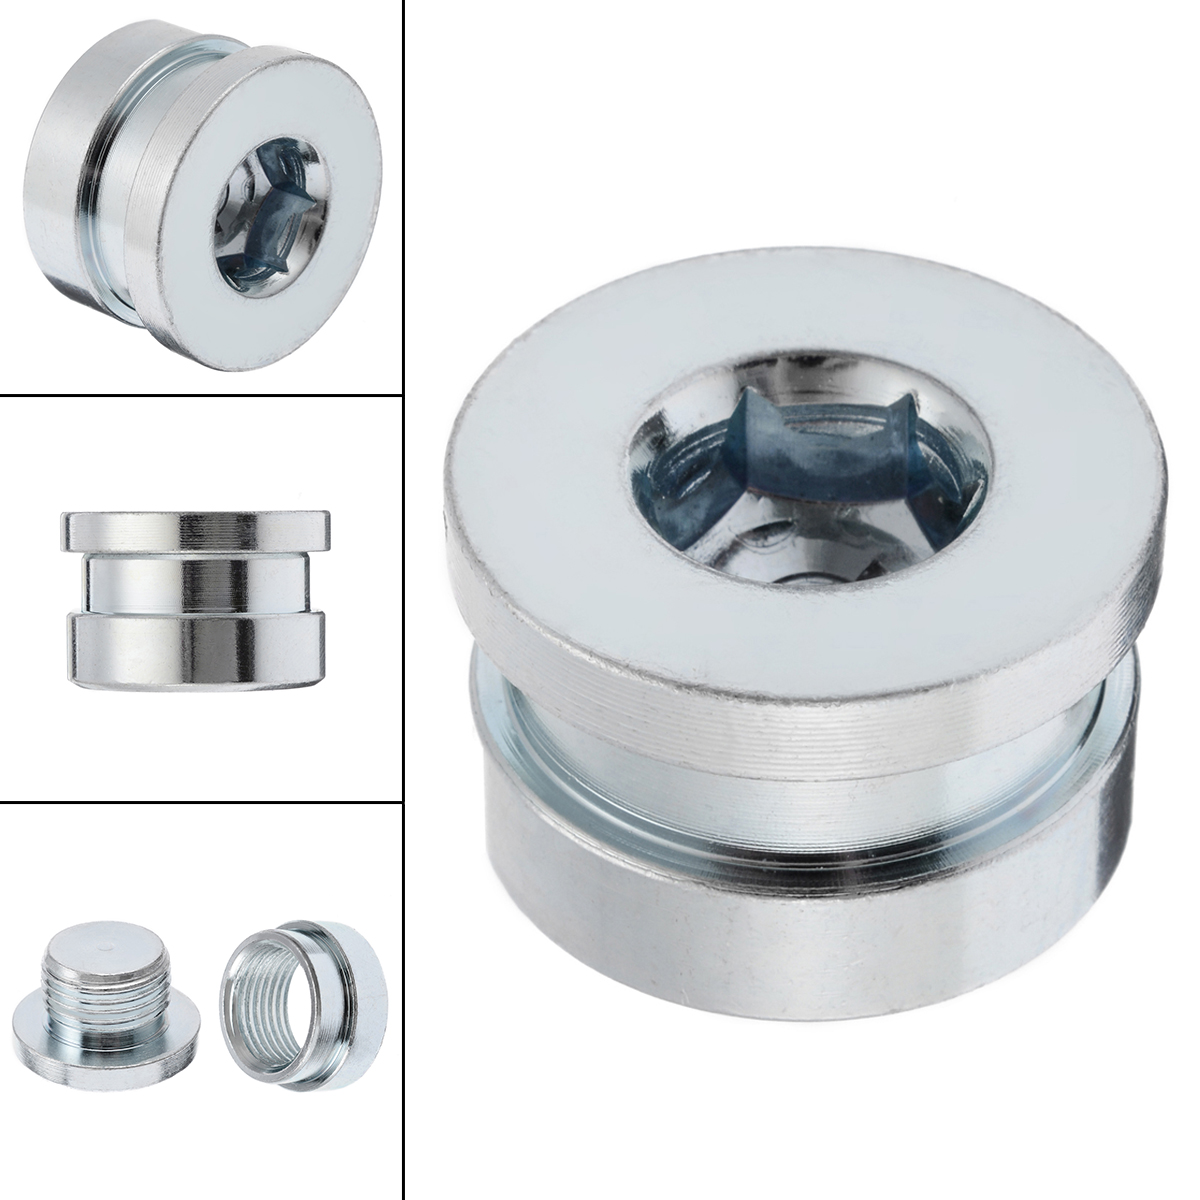 2Pcs/Set O2 Oxygen Sensor Stepped Mounting Boss And Plugs <font><b>M18</b></font> <font><b>X</b></font> <font><b>1.5</b></font> Oxygen Sensor Fittings Steel Weld Bung Accessories image